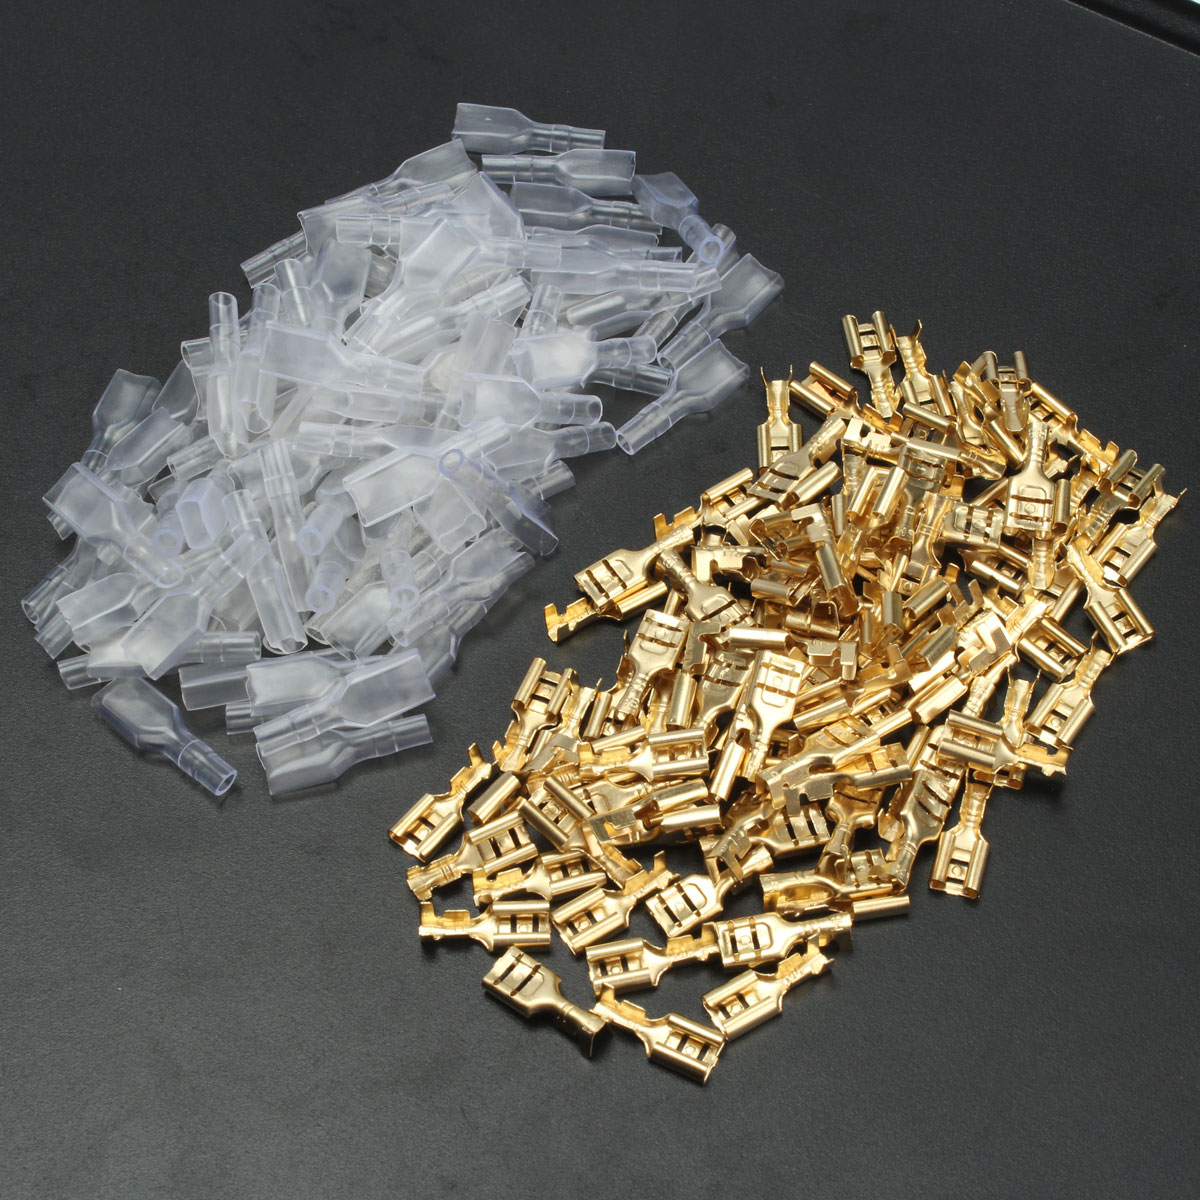 100Pcs Copper 6.3mm Female Spade Crimp Terminals 22-16A